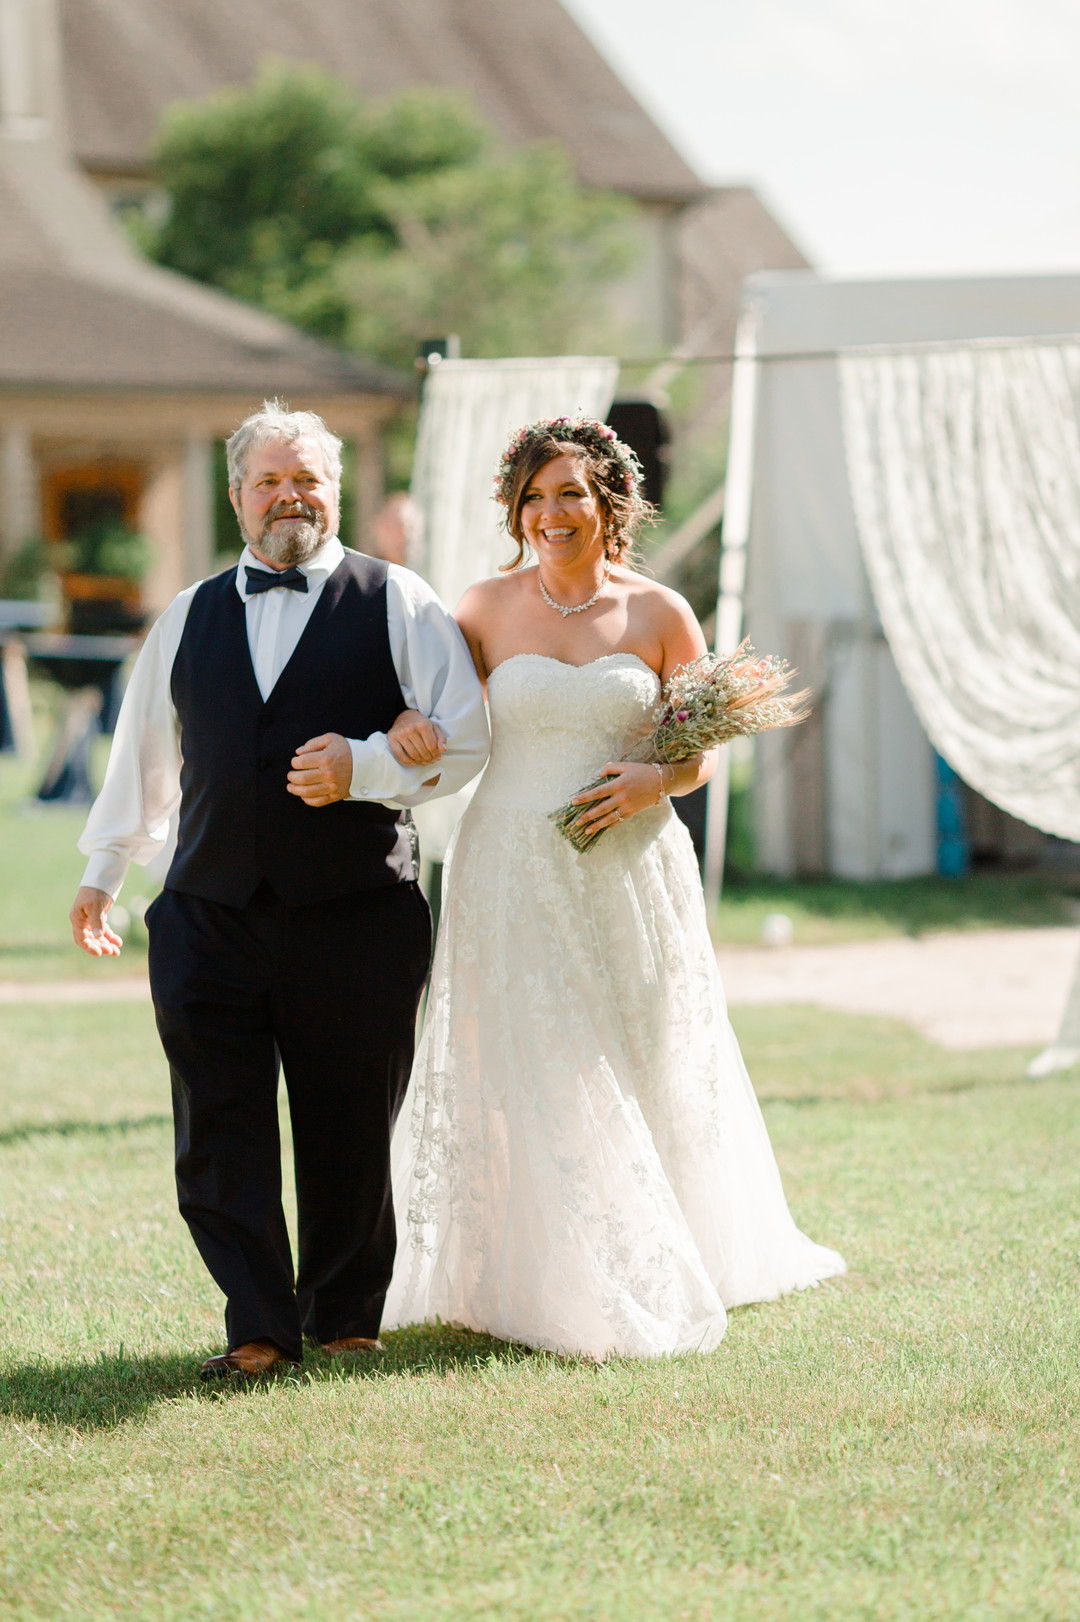 Bride walking down the aisle with father: Rustic country wedding in Minooka, IL captured by Katie Brsan Photography. Visit CHItheeWED.com for more wedding inspiration!